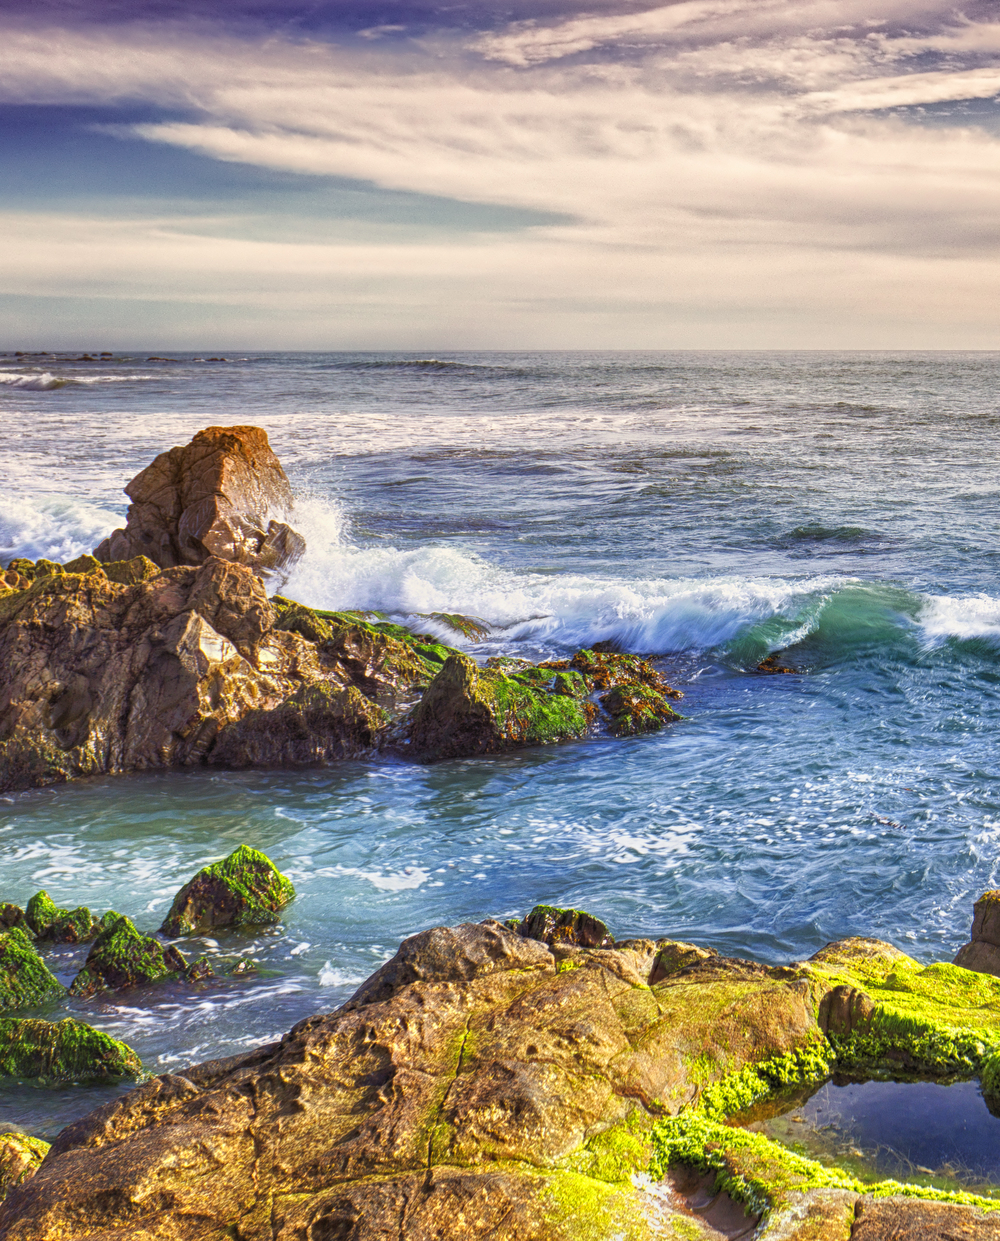 cambria beach rock 4.jpg